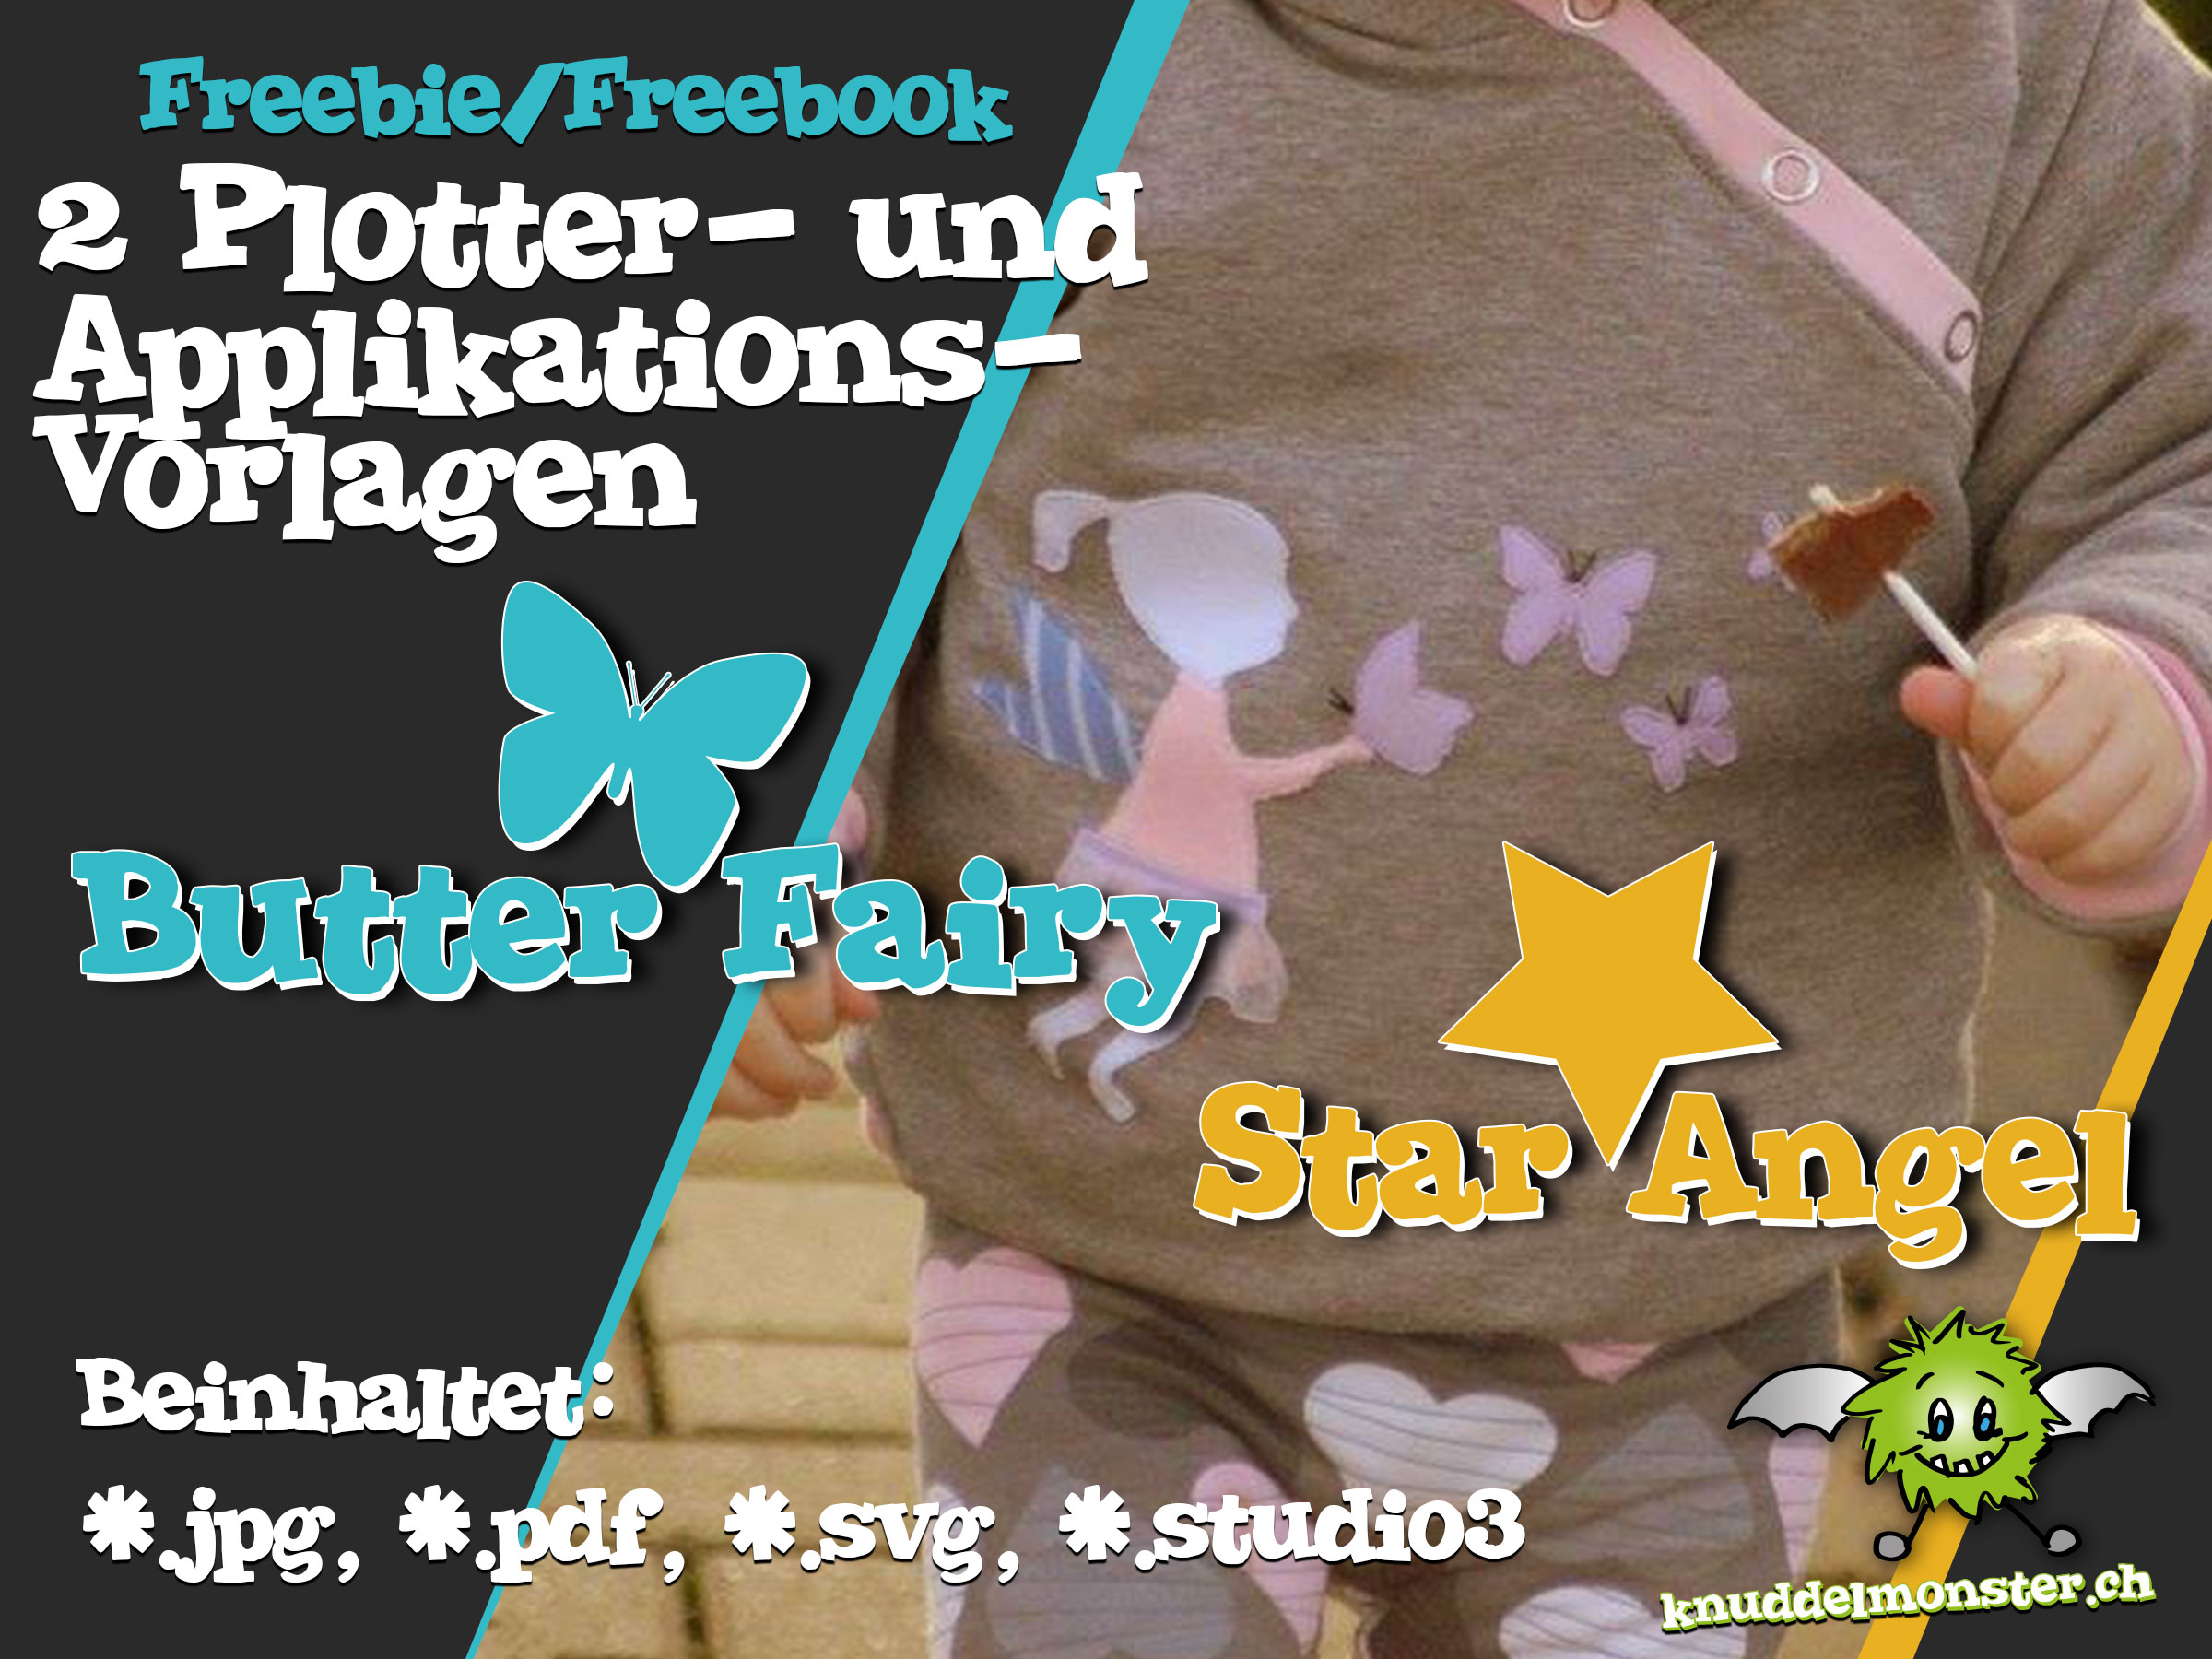 Schmetterling Applikation Vorlage Plotter Und Applikationsvorlage Butter Fairy Und Star